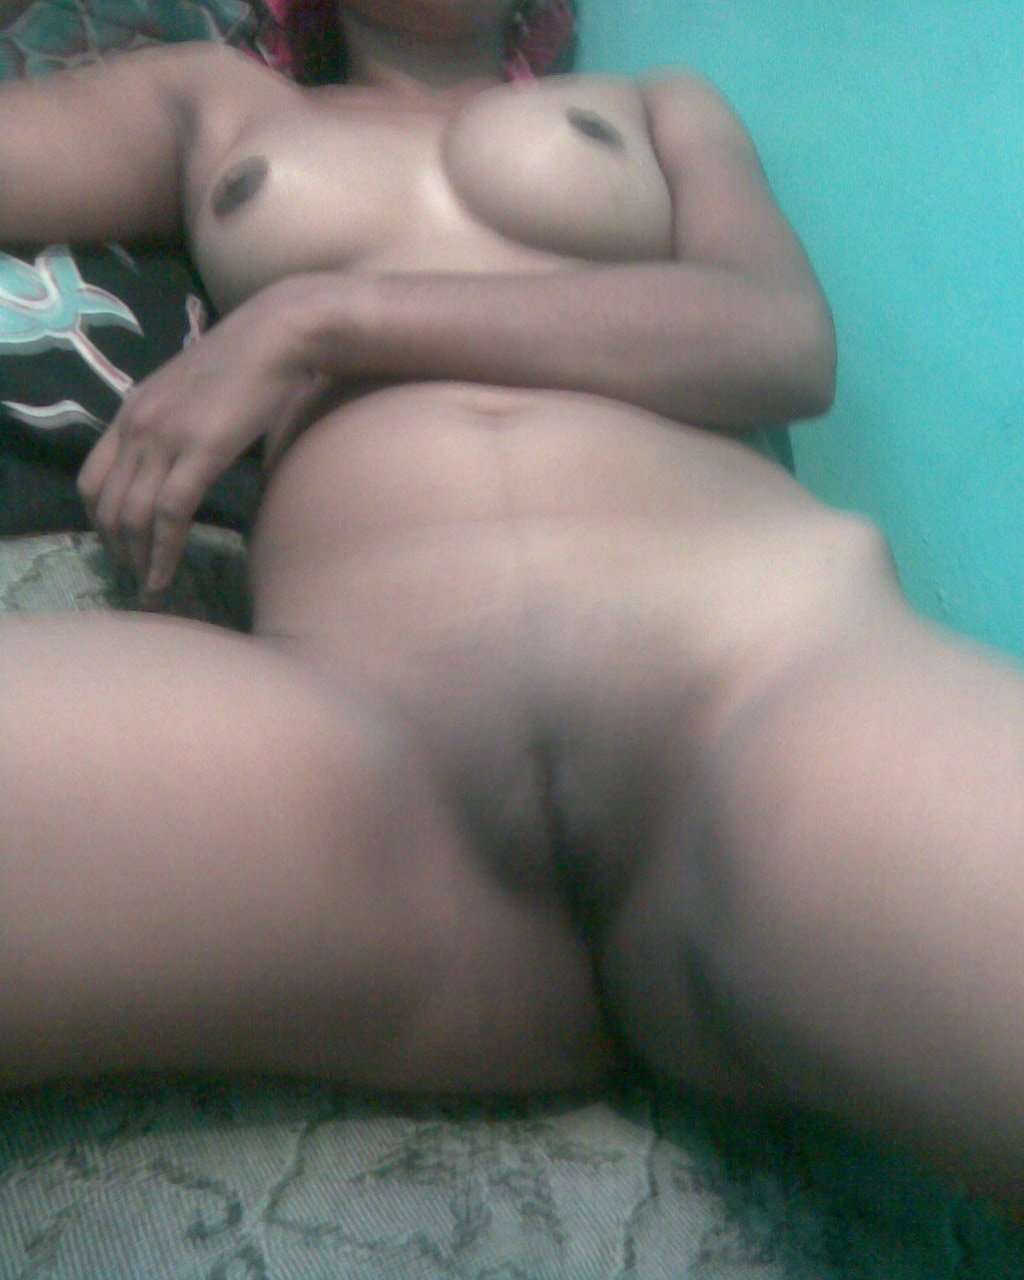 New Swetha Naked Indian Babe Pussy Pictures - Real Indian Gfs-7349